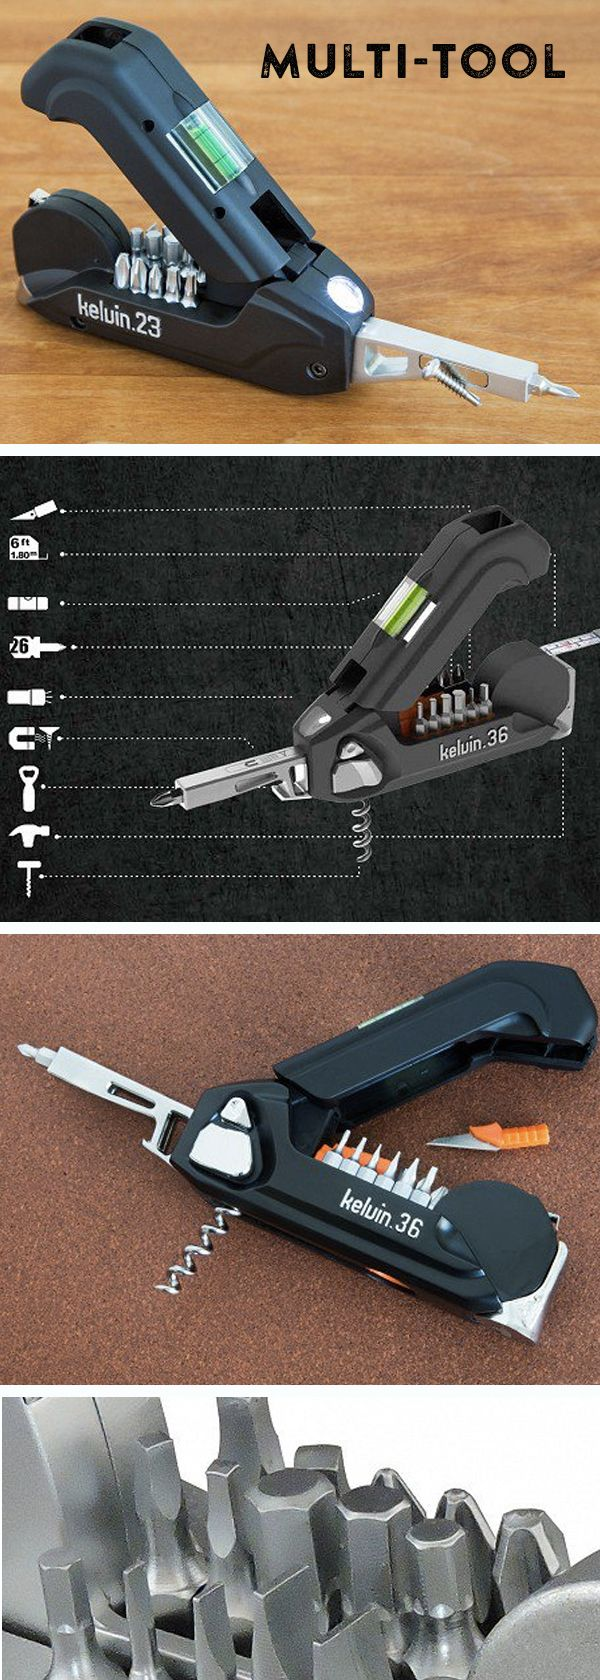 A slick, no-nonsense tool that belongs in cars, offices, dormitories, and apartments everywhere.